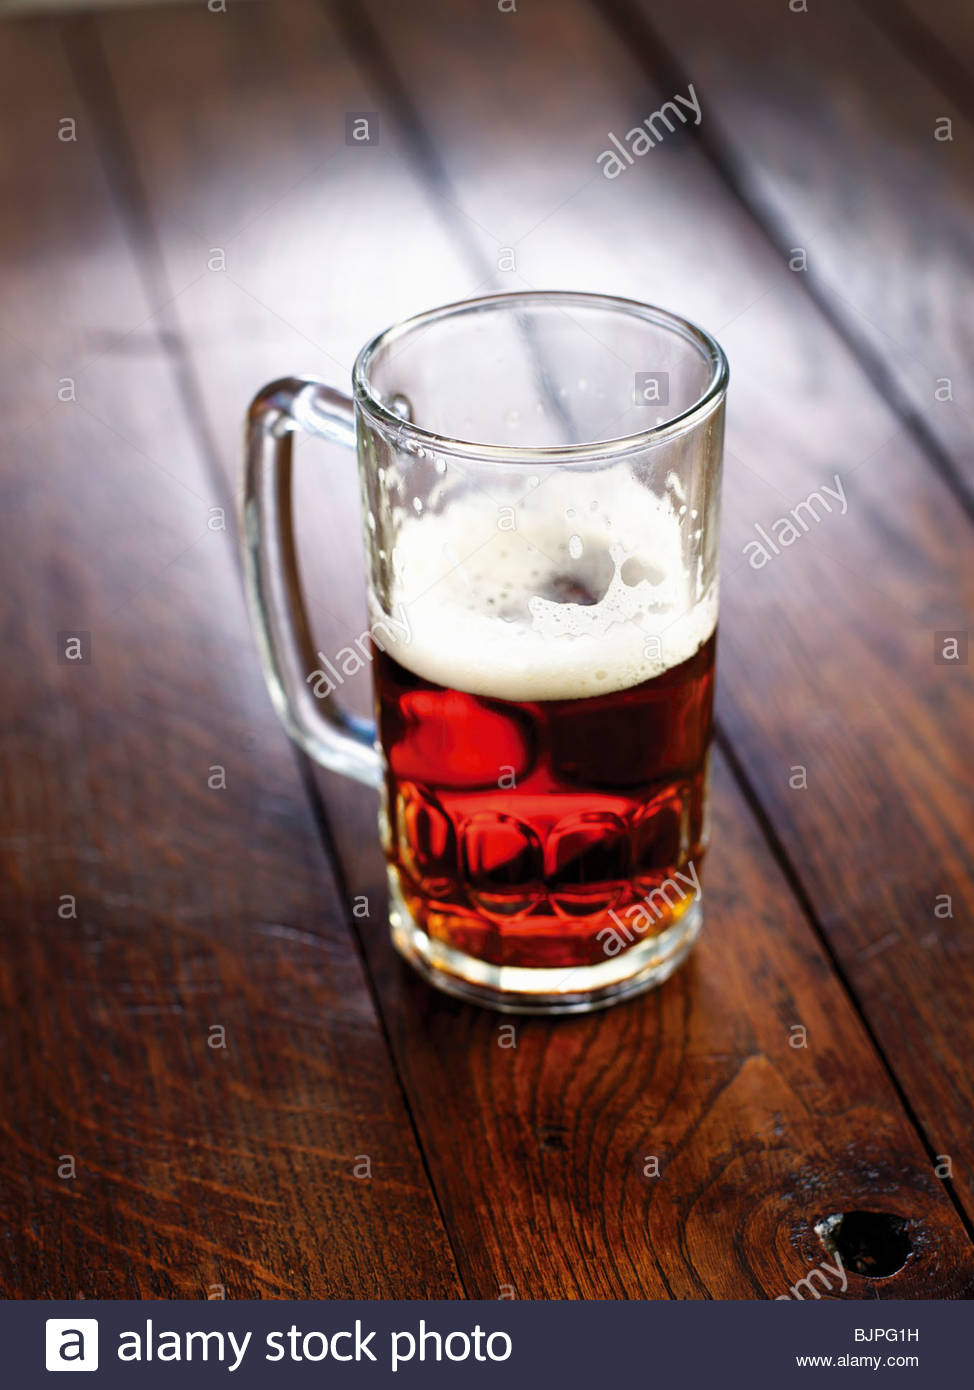 Half-full glass of beer on wooden background - Stock Image